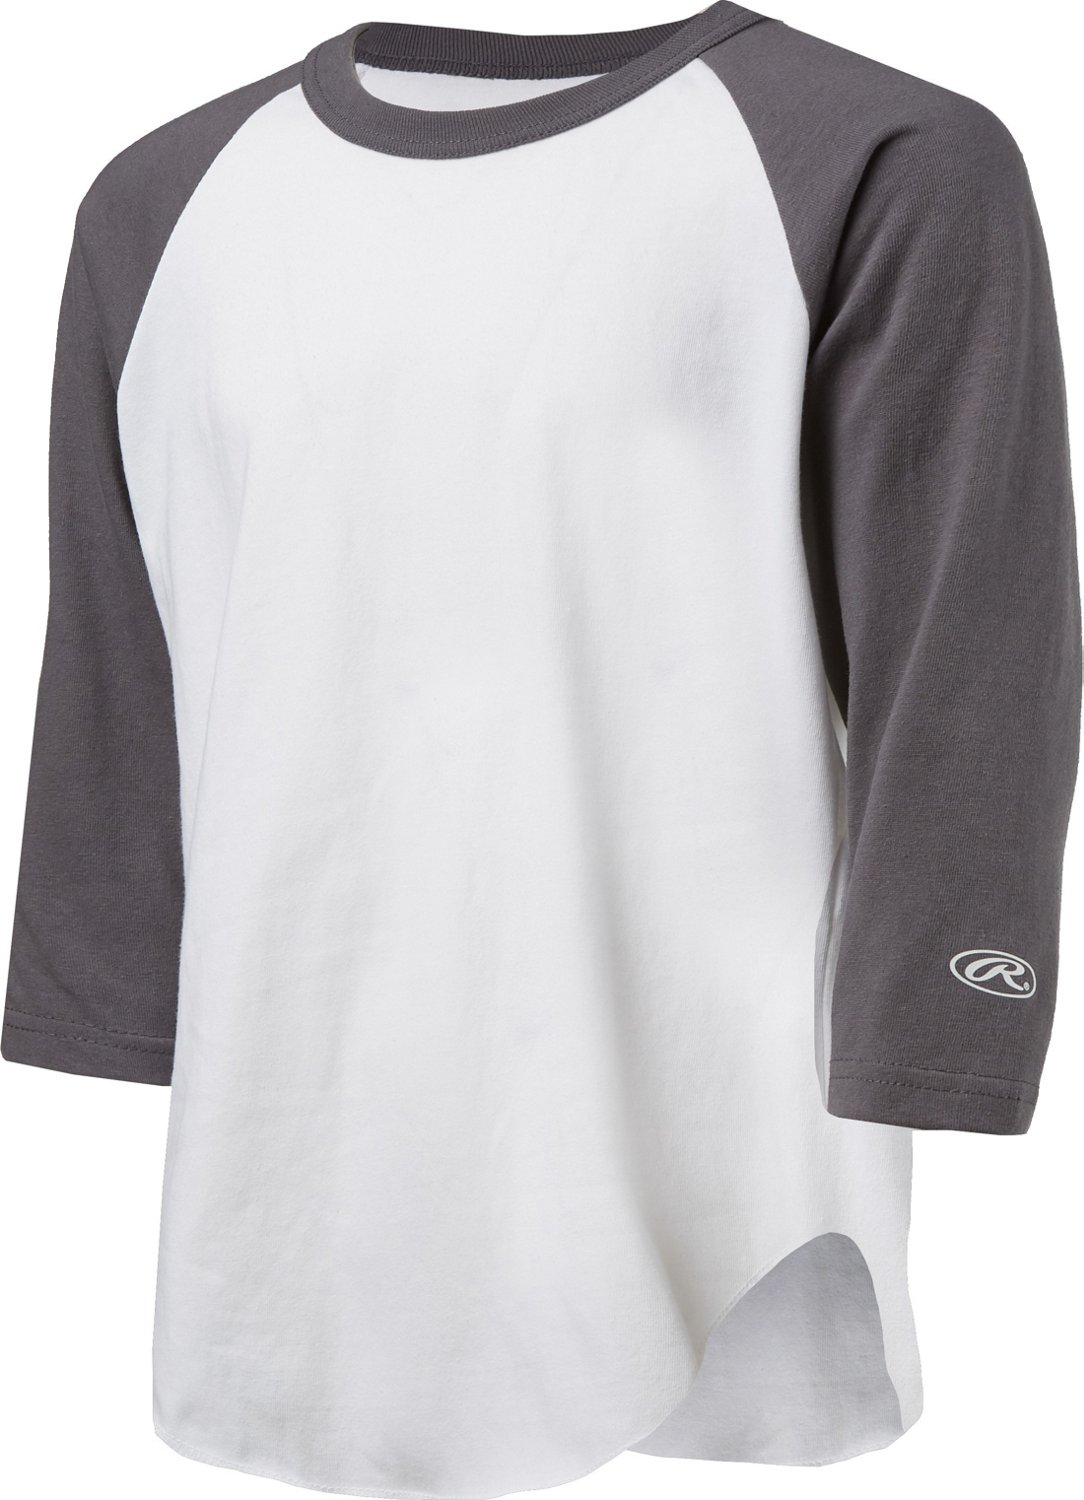 3d03a361 Rawlings Men's 3/4 Sleeve T-shirt | Academy